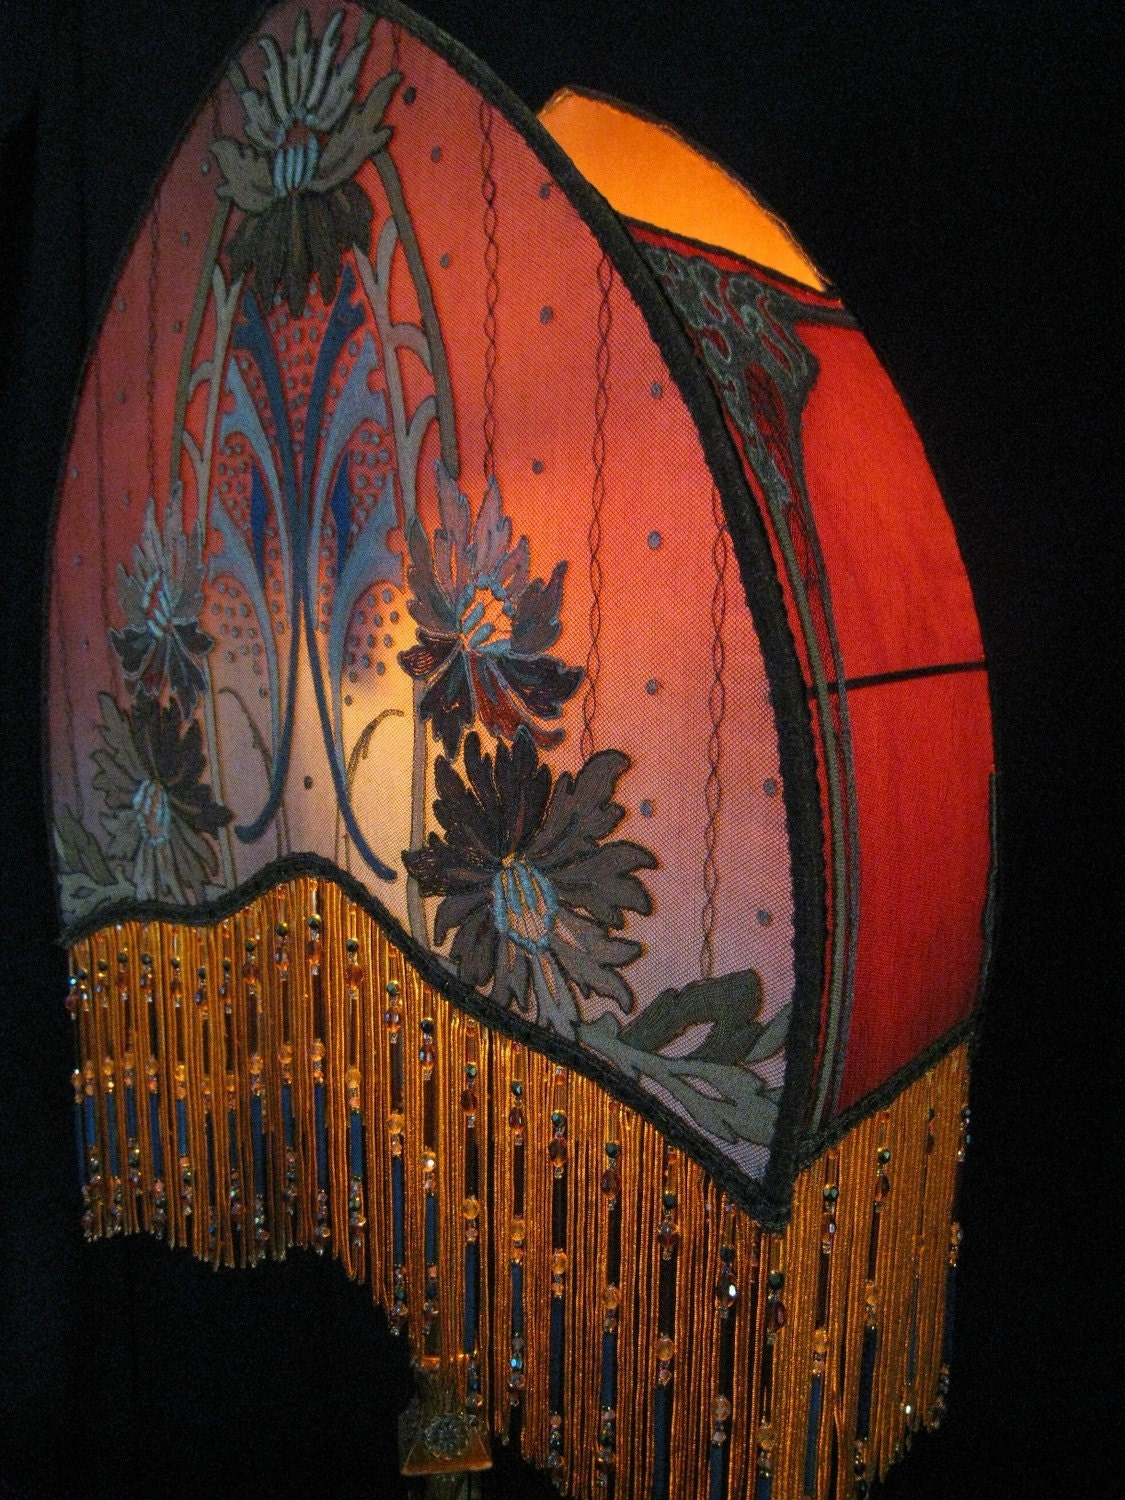 Antique Lamp Shade Arts & Crafts handmade Art deco/Art:... deco/Art Nouveau lampshade Beaded fringe. 🔎zoom,Lighting